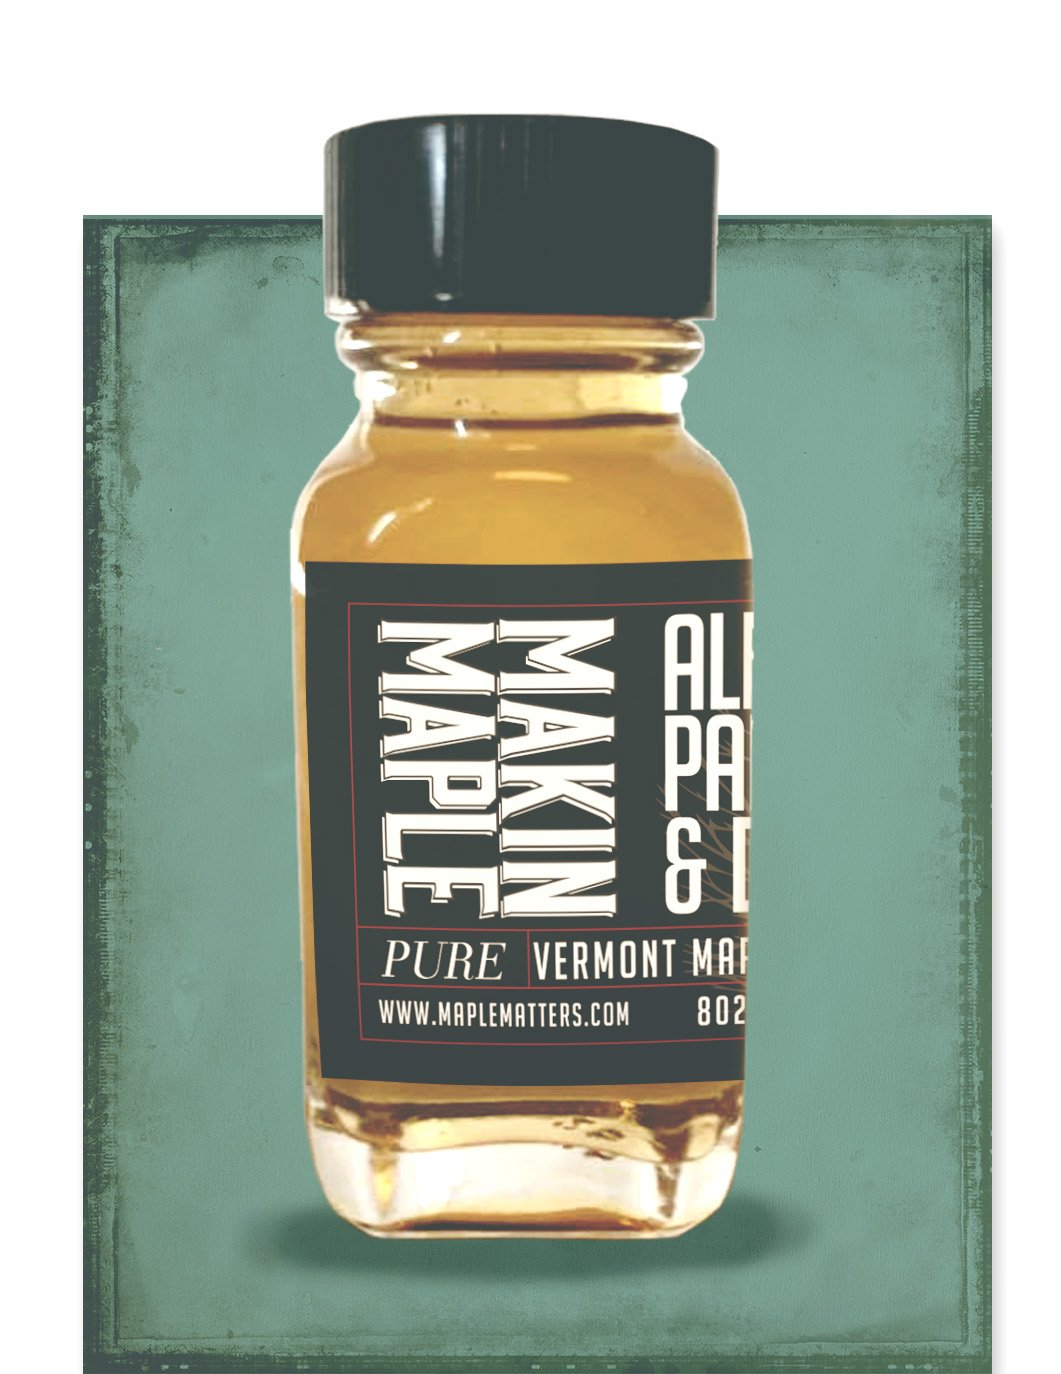 100ml Grade A VT Maple Syrup: Golden Color with Delicate Flavor